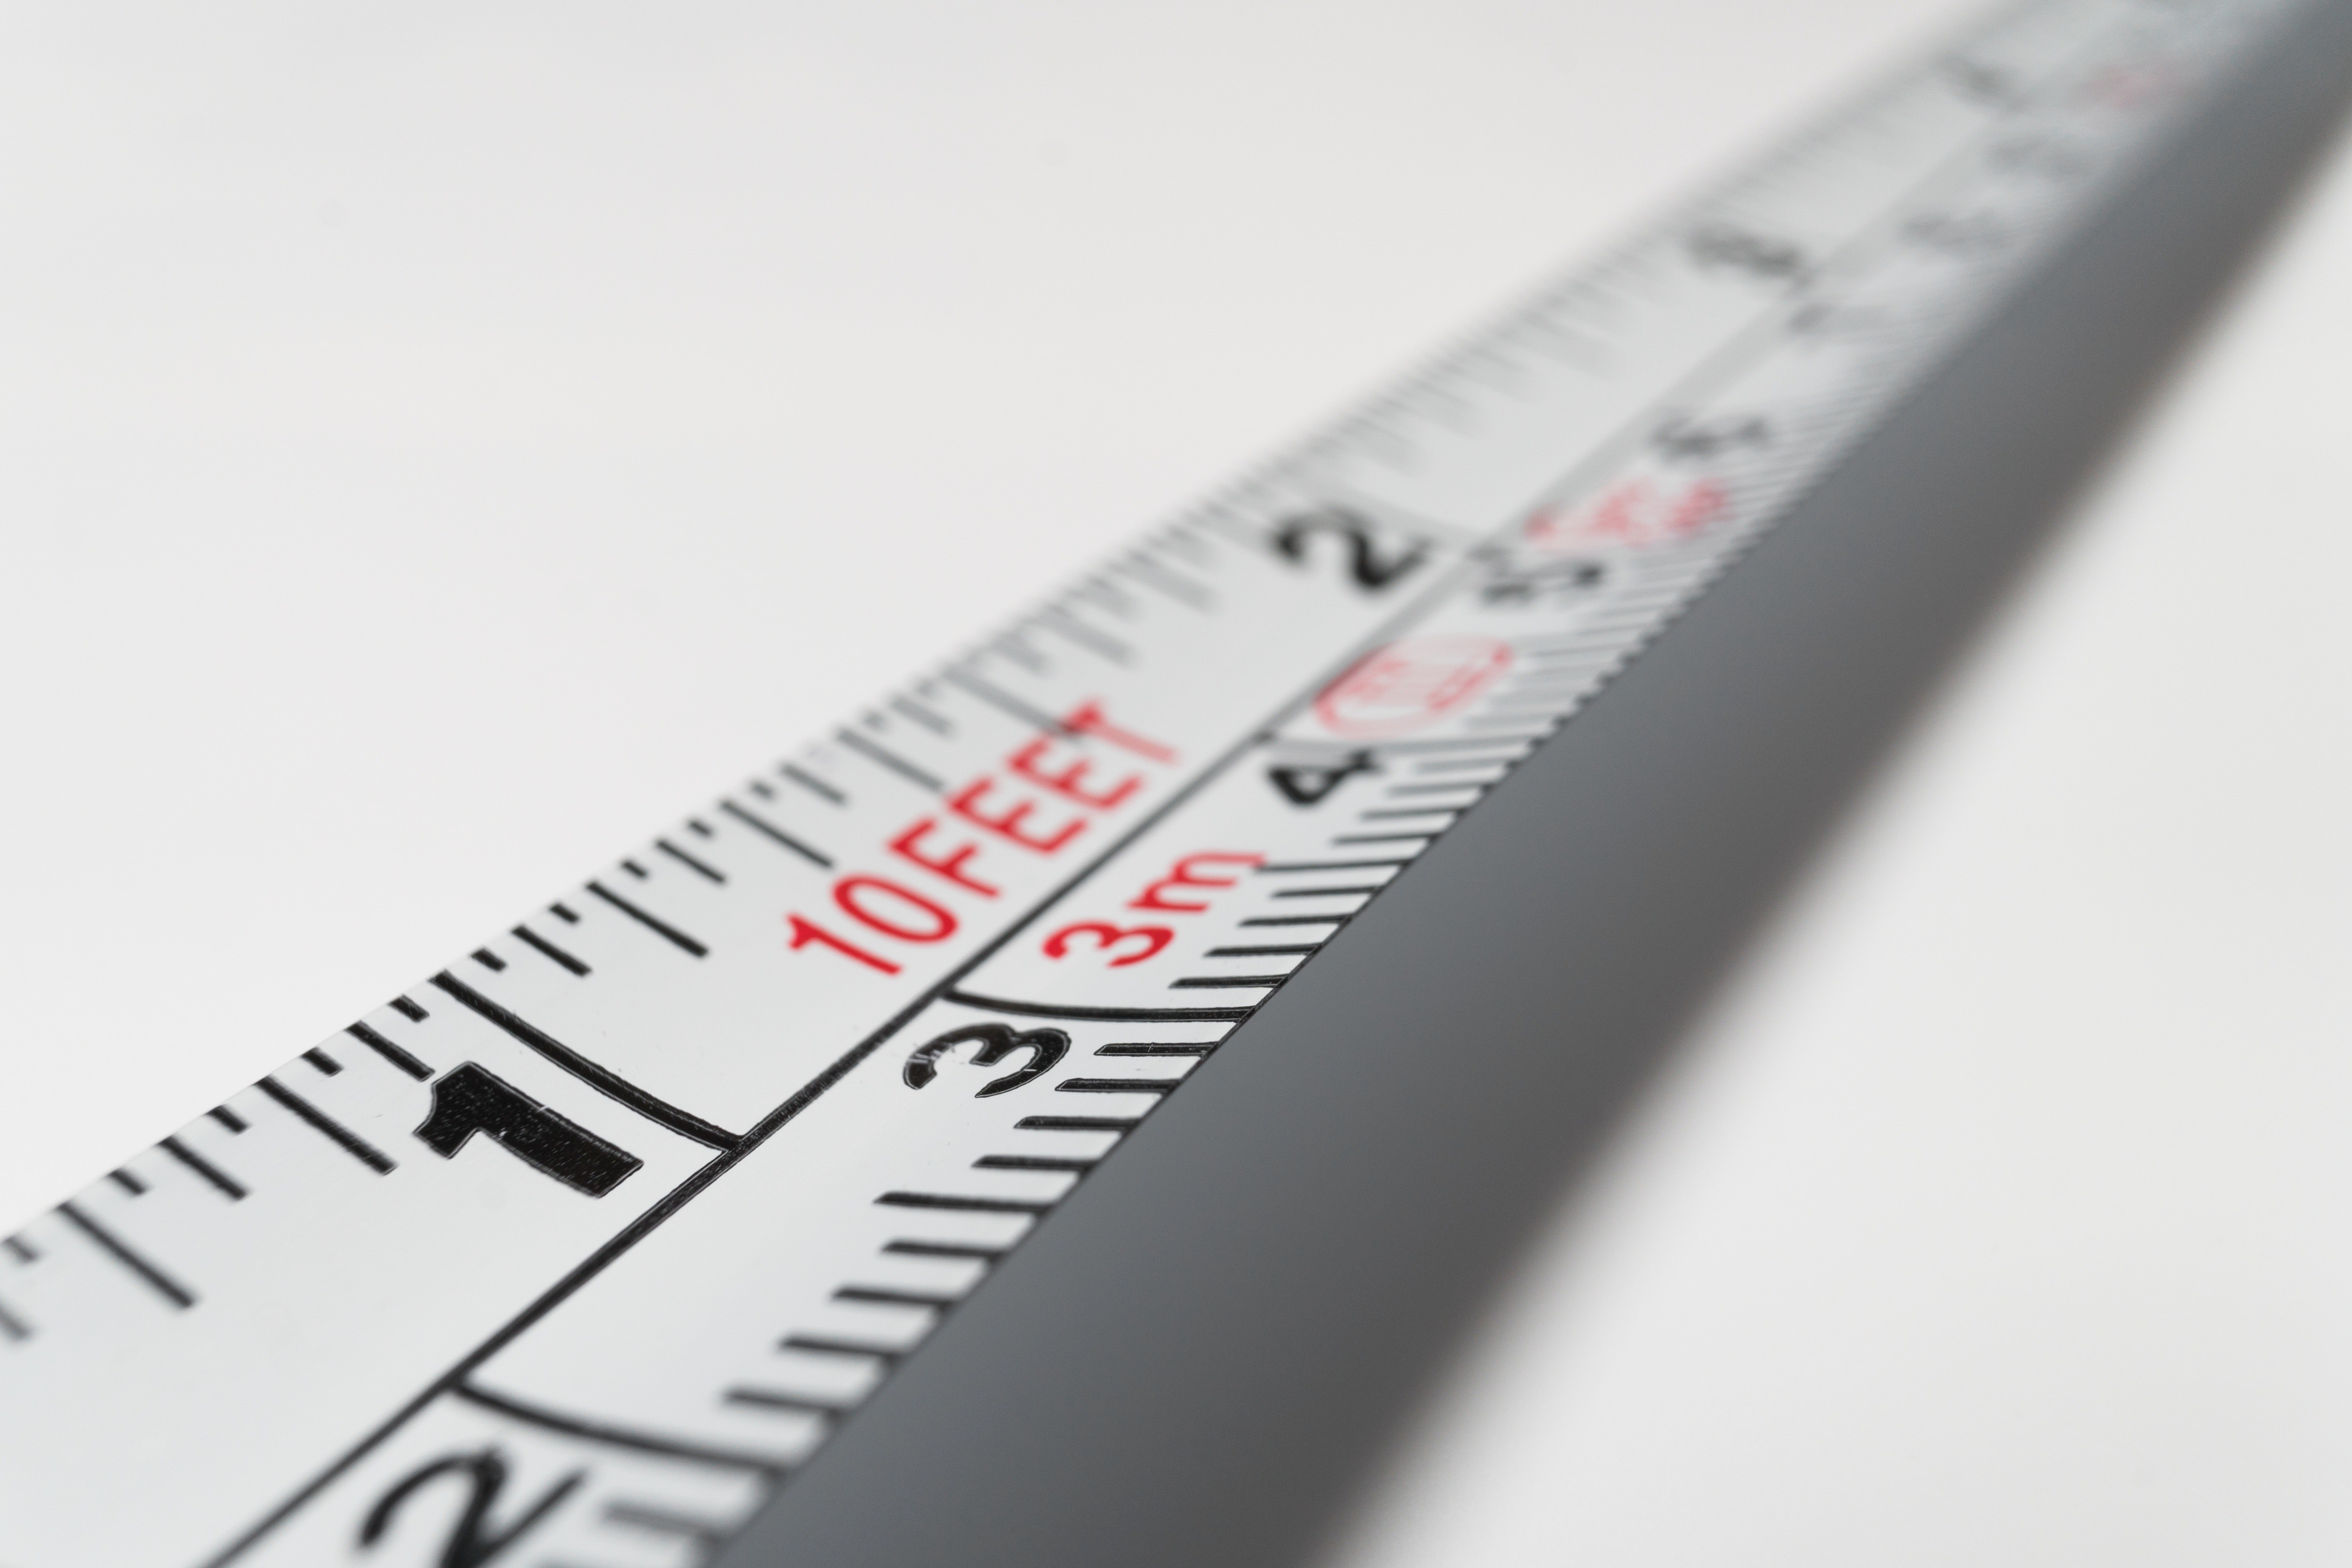 centimeters-close-up-depth-of-field-162500